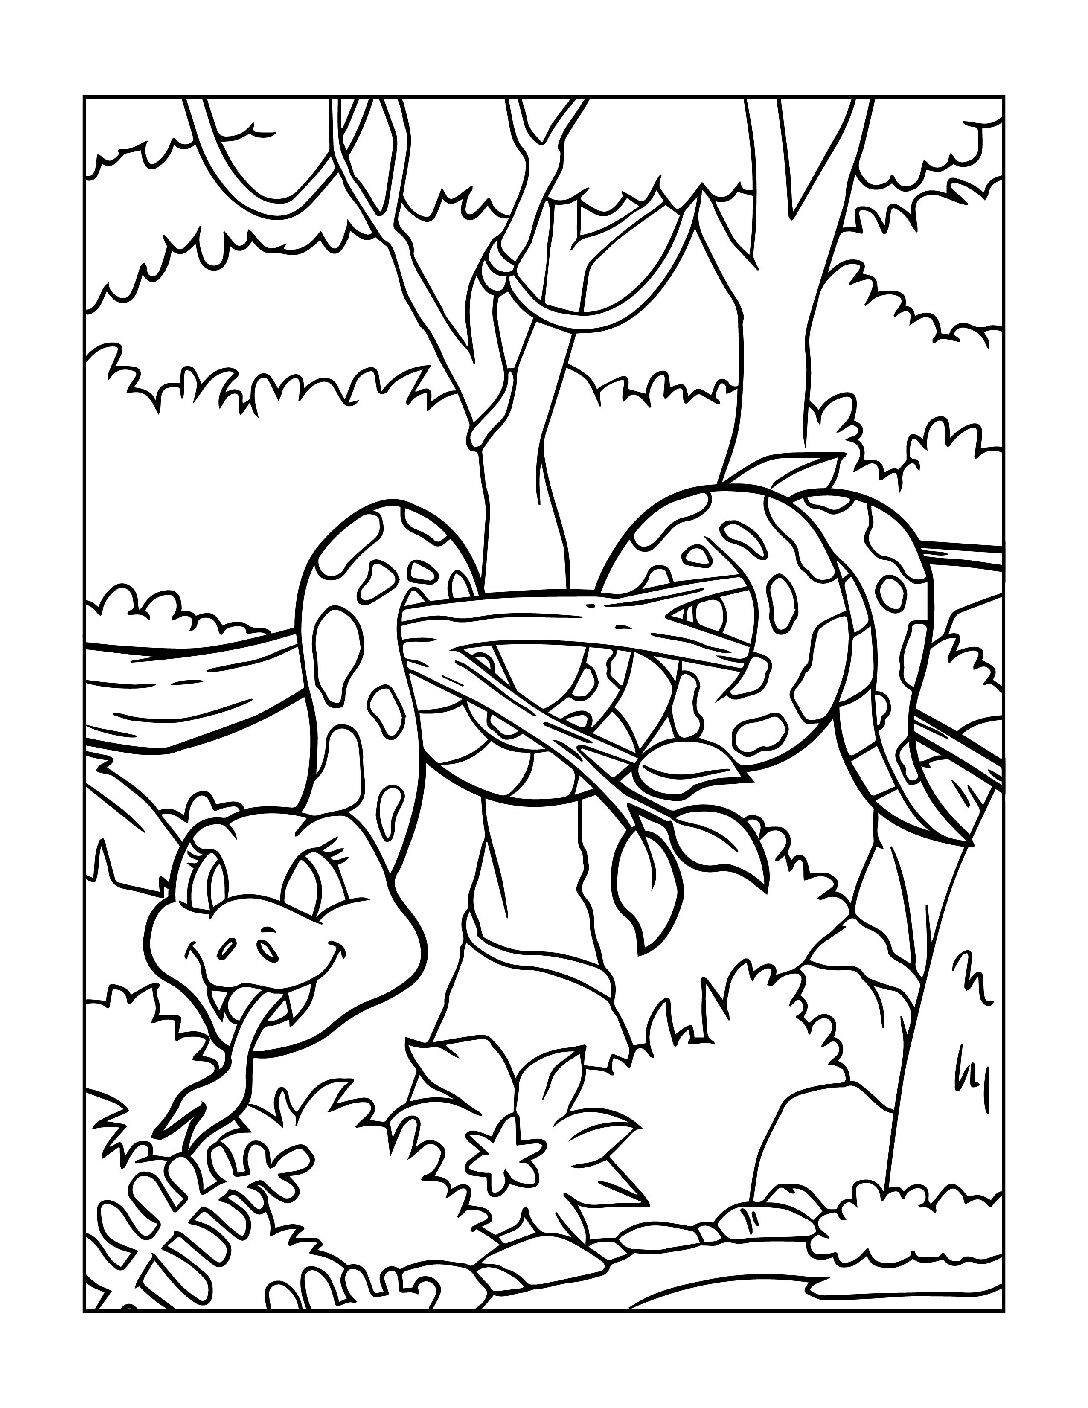 Coloring-Pages-Zoo-Animals-2-01-1-pdf Free Printable  Zoo Animals Colouring Pages